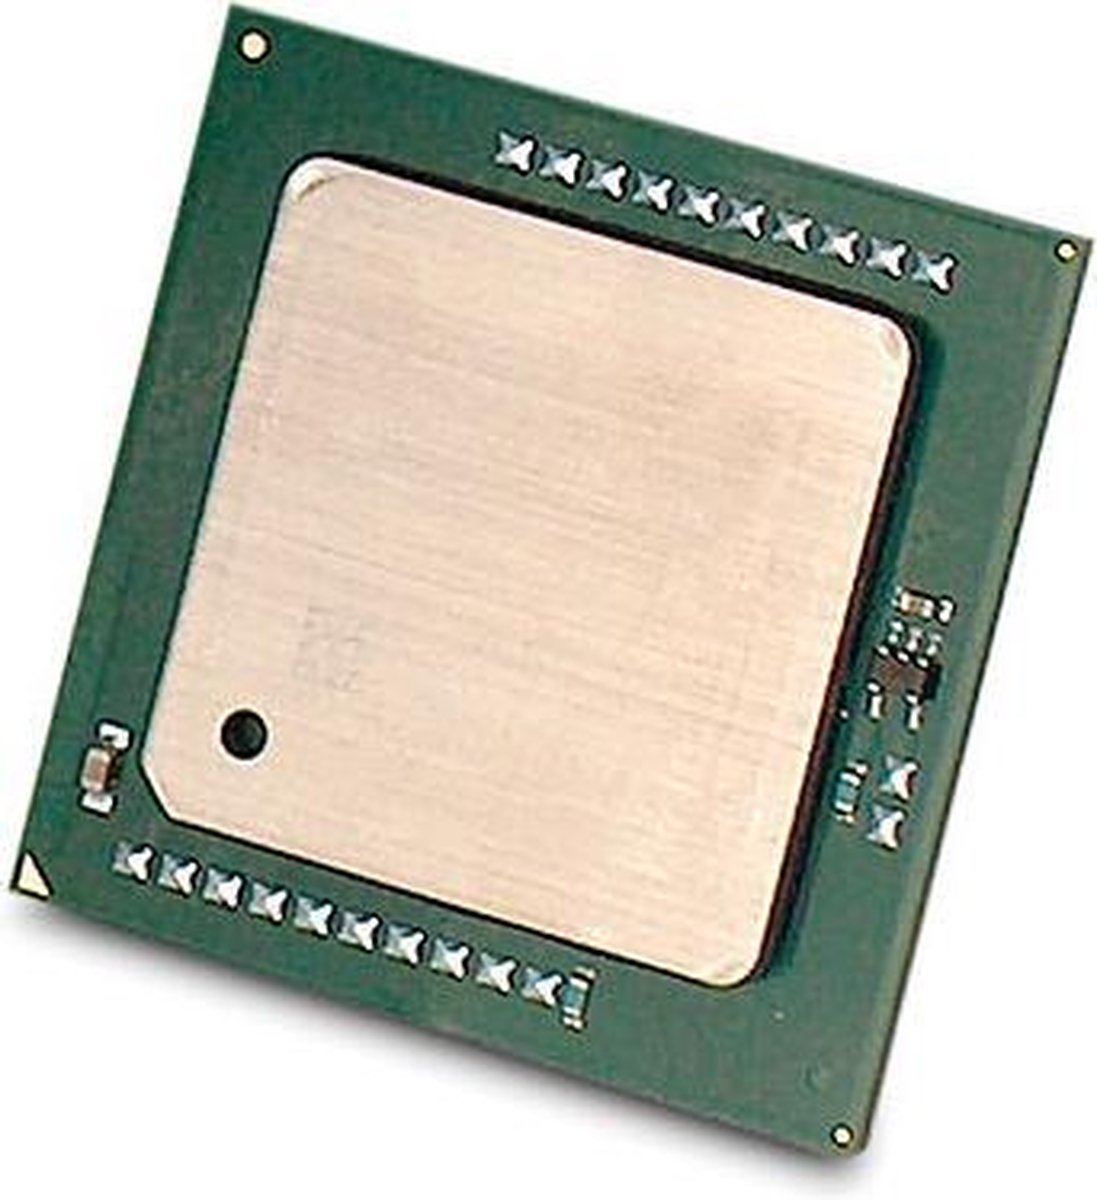 Hewlett Packard Enterprise Intel Xeon E5-2637 v4 processor 3,5 GHz 15 MB Smart Cache